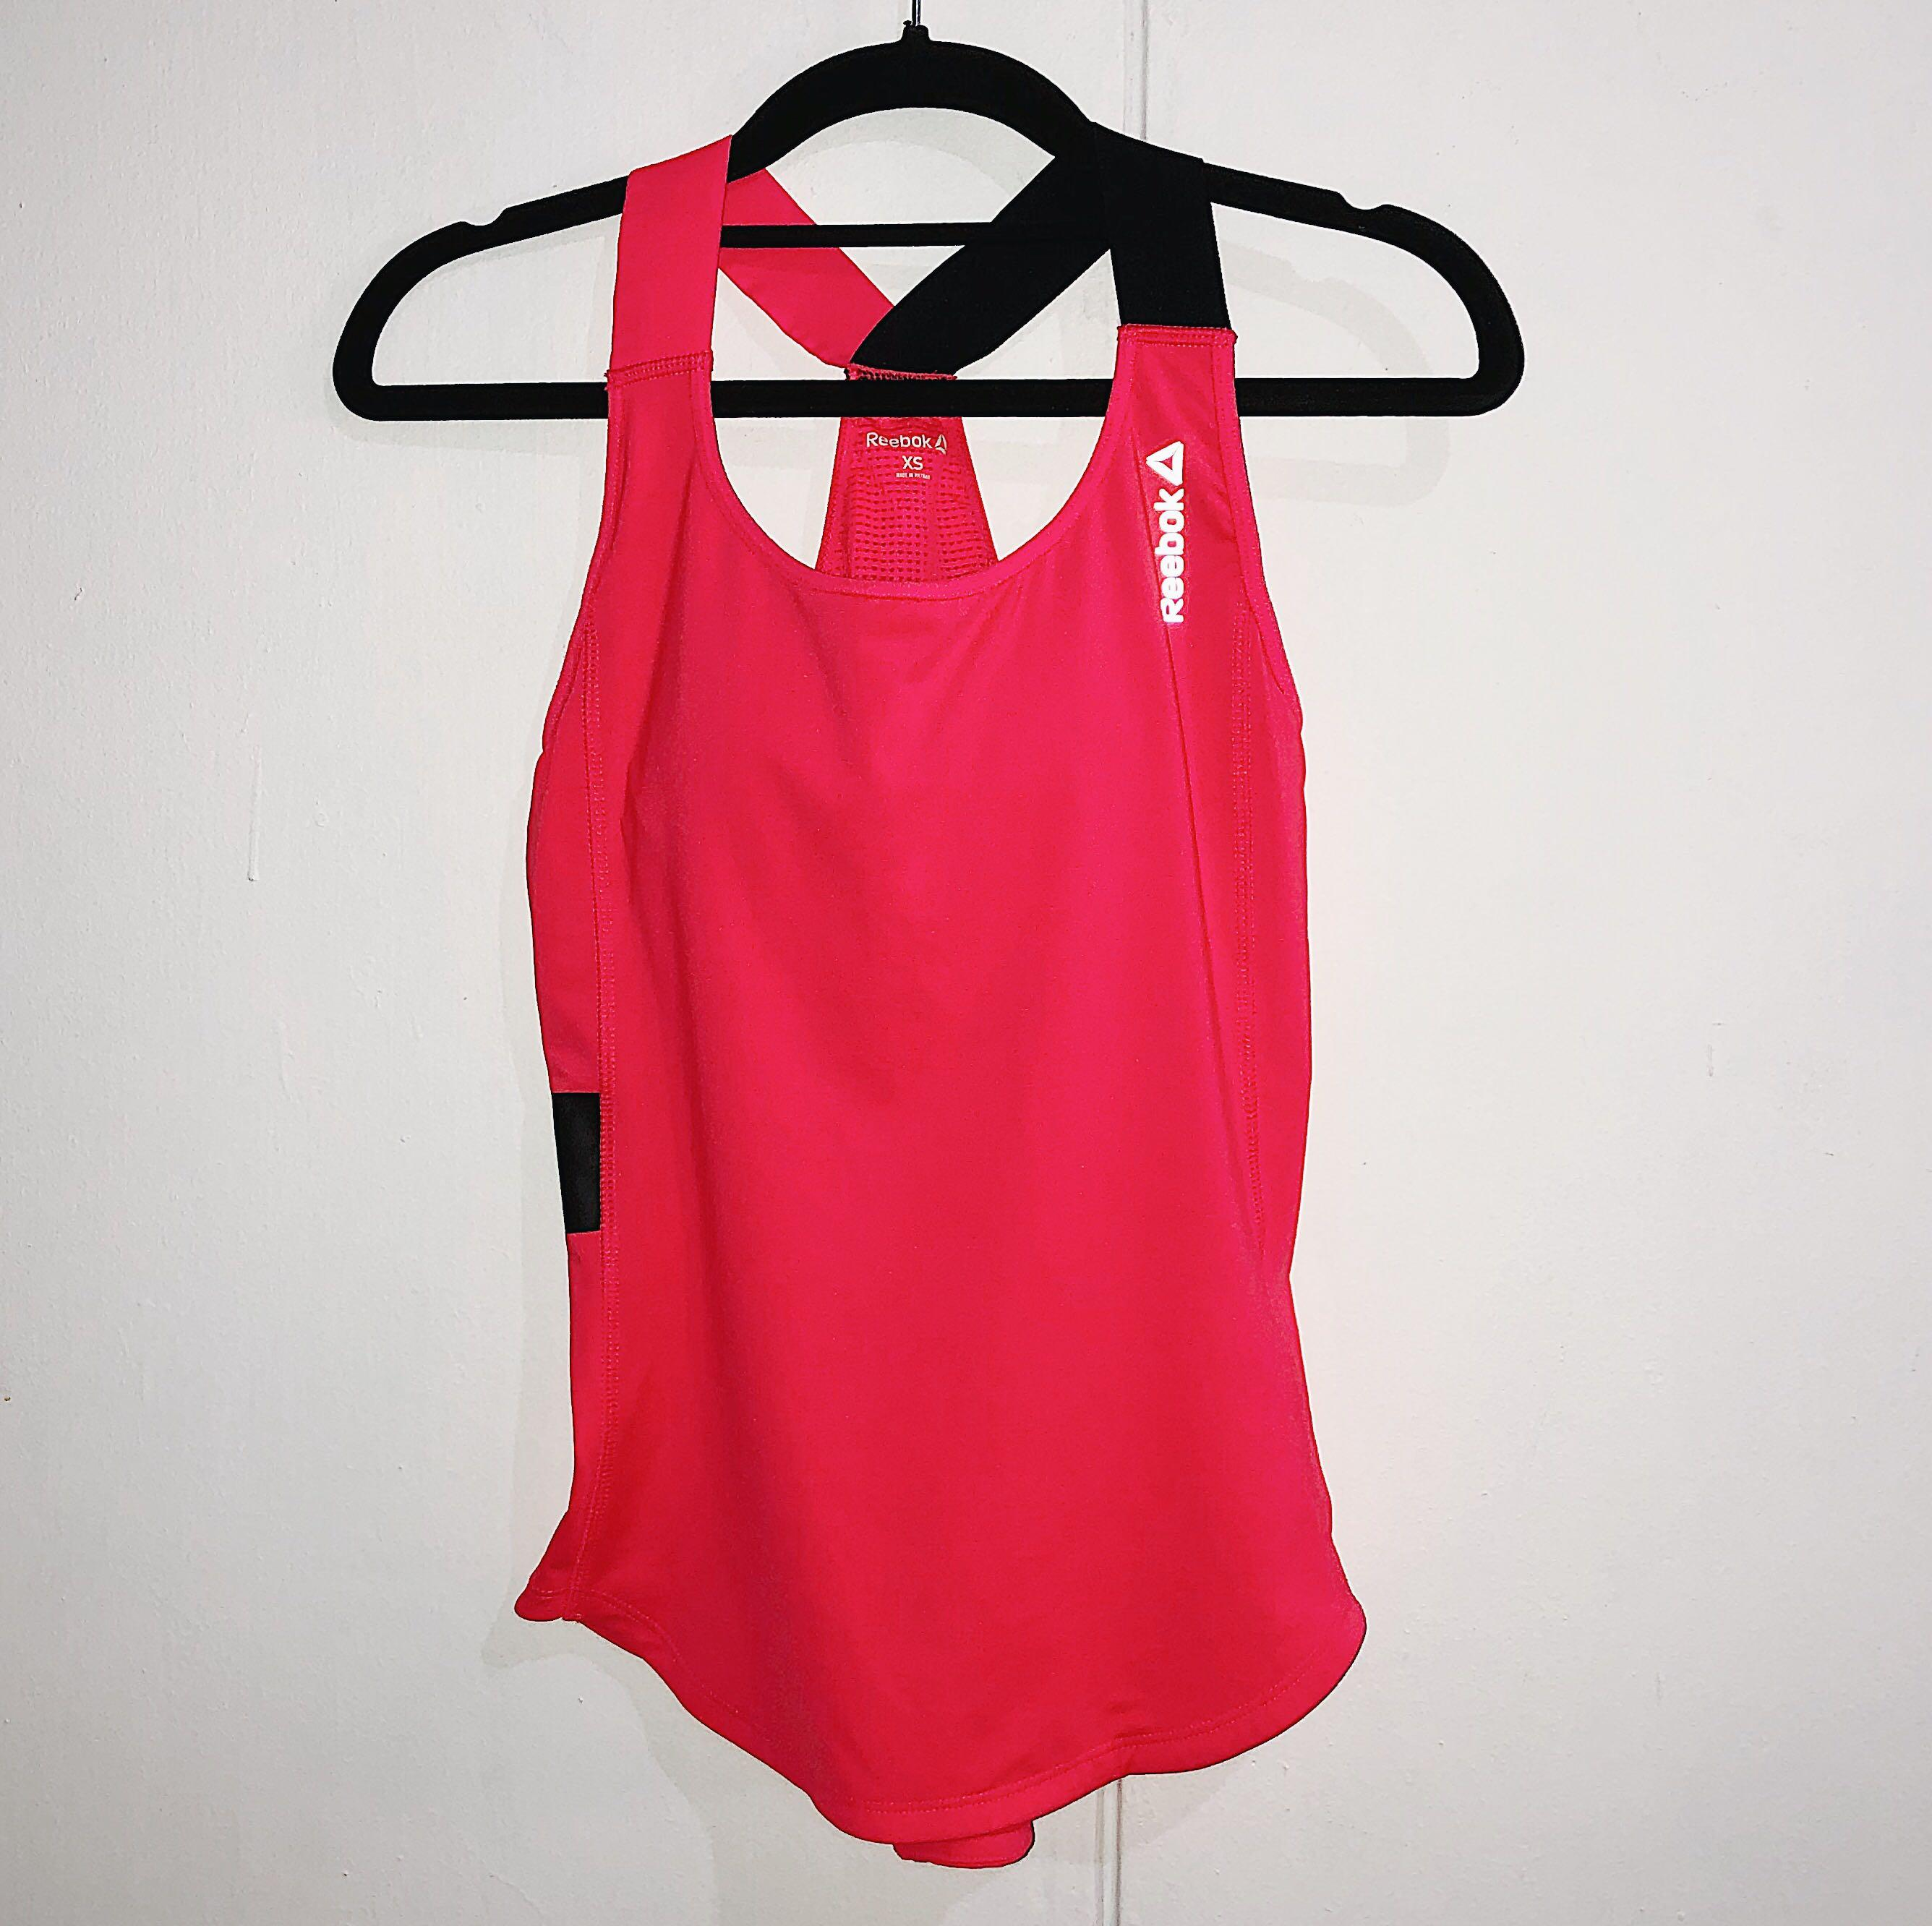 Reebok Neon Coral Work Out Exercise Stretchable Sleeveless Top